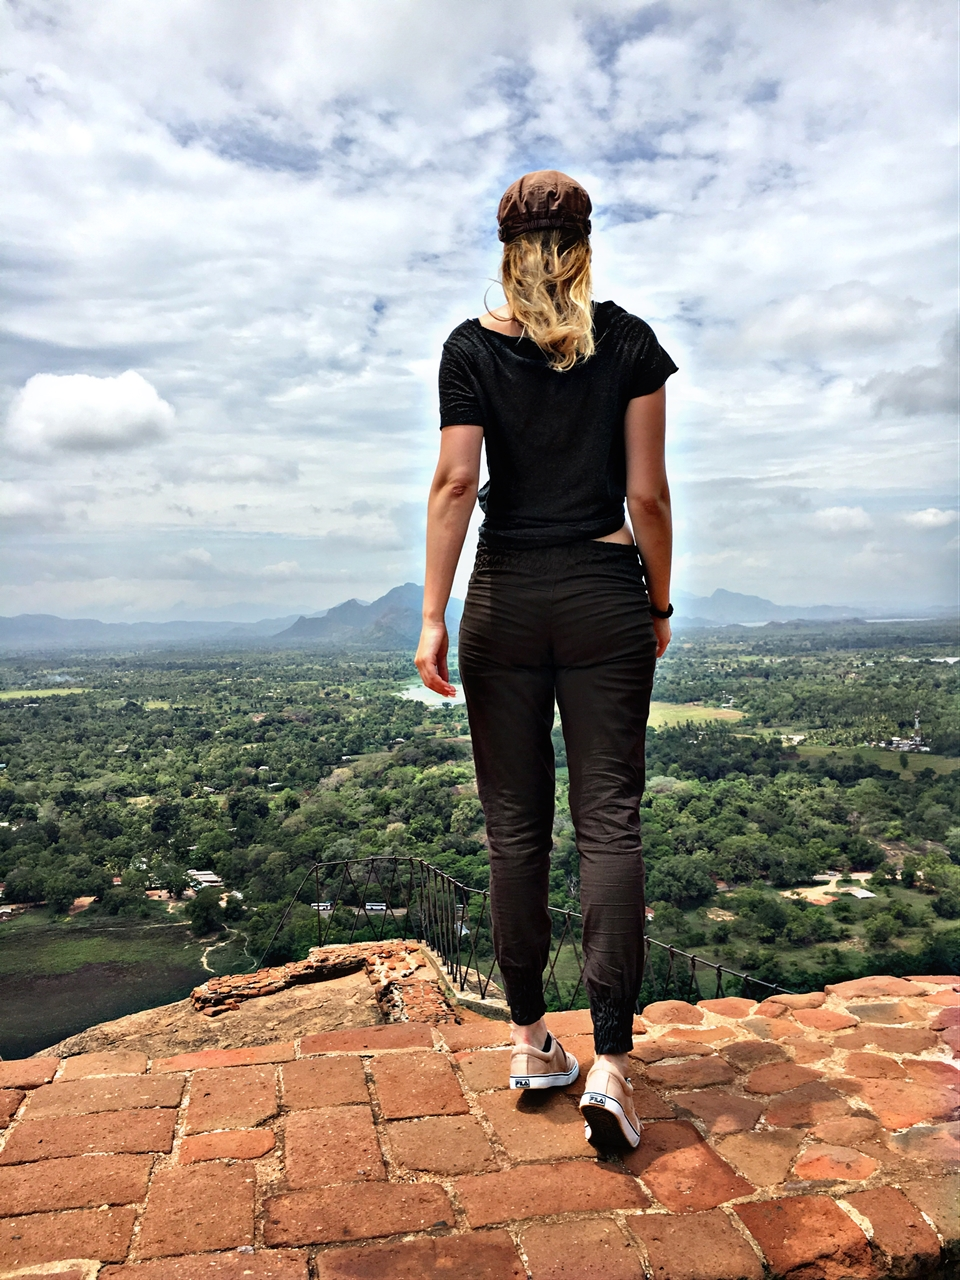 Sri Lanka Travel Guide - Ausblick vom Sigiriya Felsen - Fashionladyloves by Tamara Wagner - Travel Blog - Reiseblog aus Graz Österreich